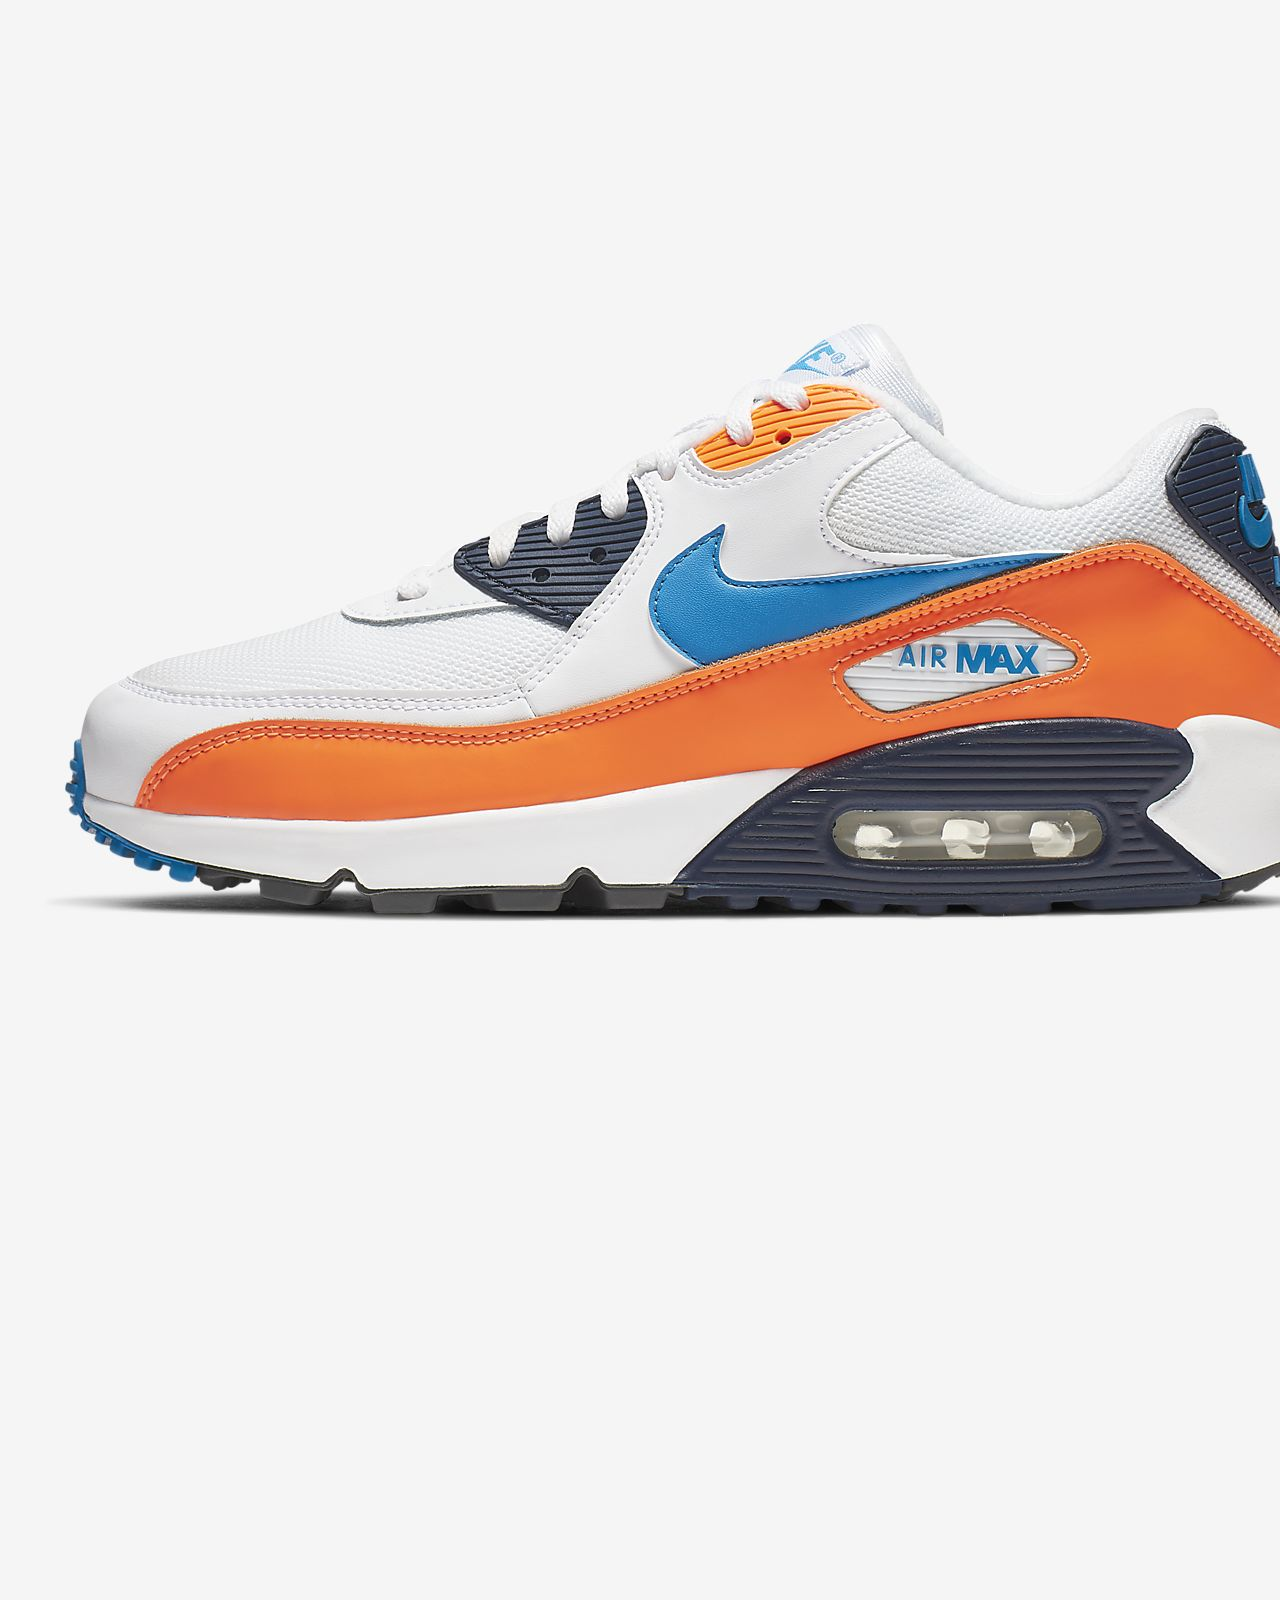 separation shoes 6e8c5 e353b ... Nike Air Max 90 Essential Men s Shoe